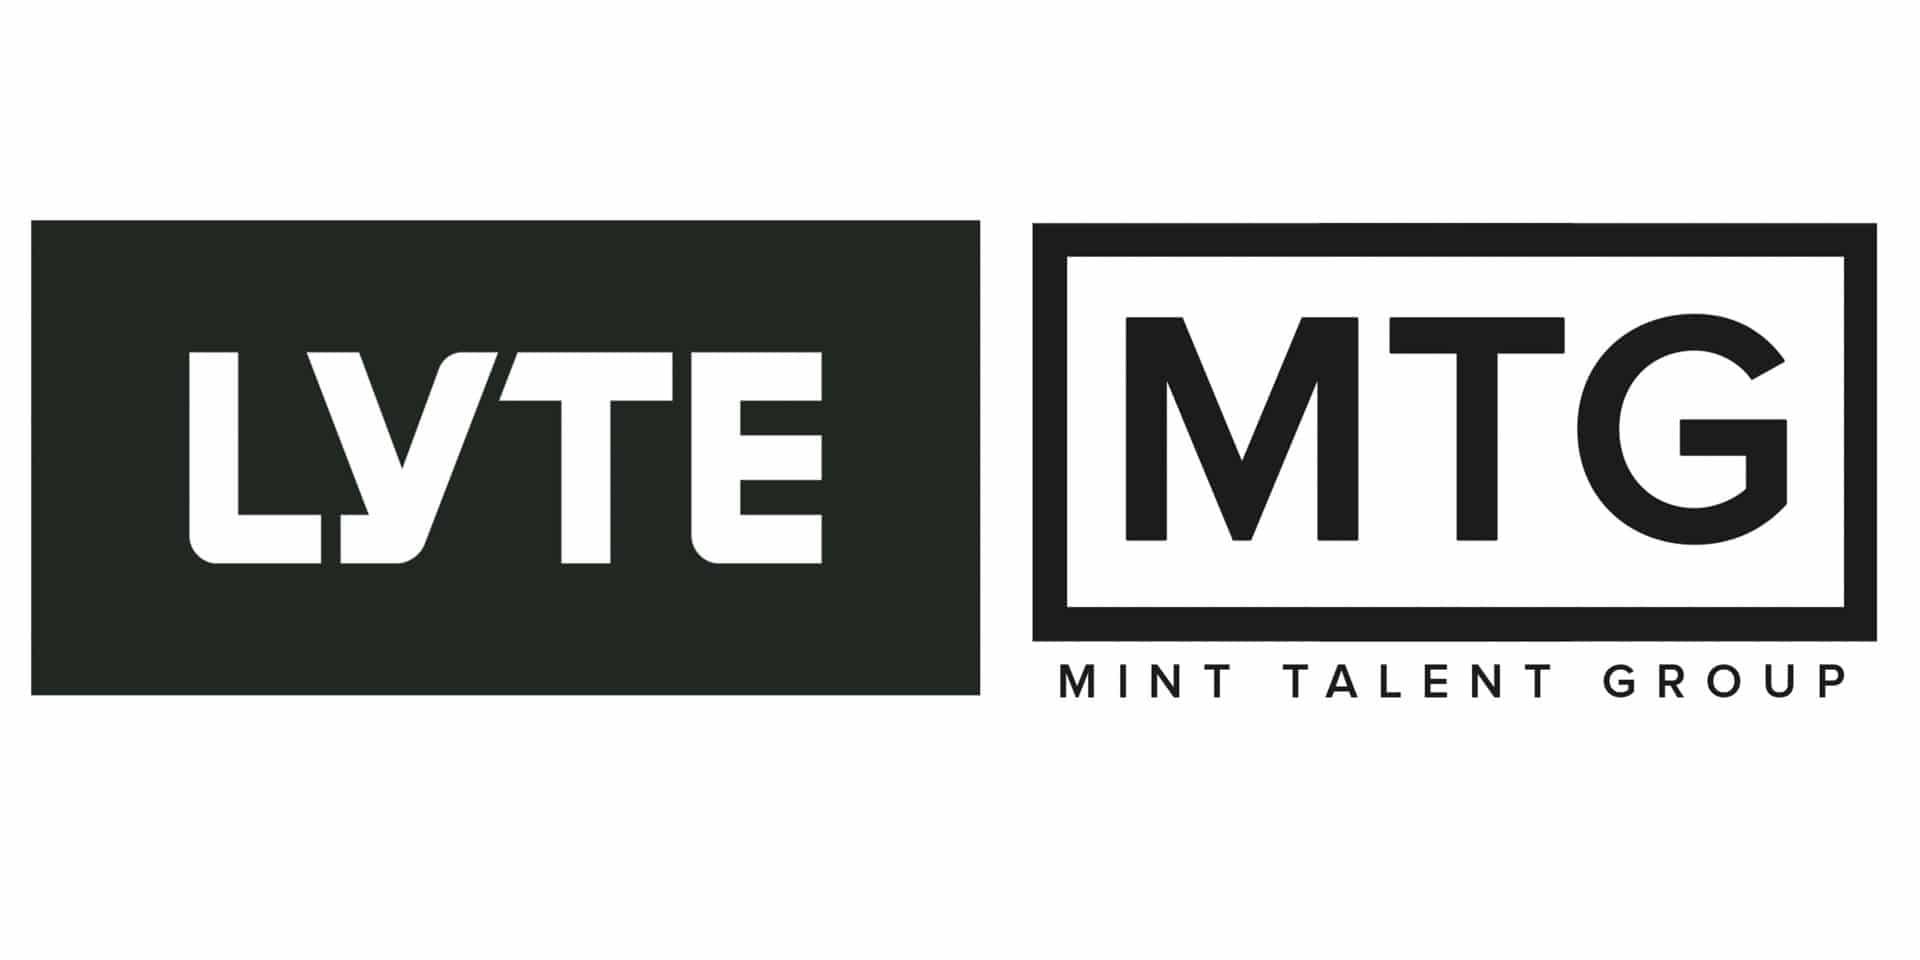 Lyte Partners With Mint Talent Group